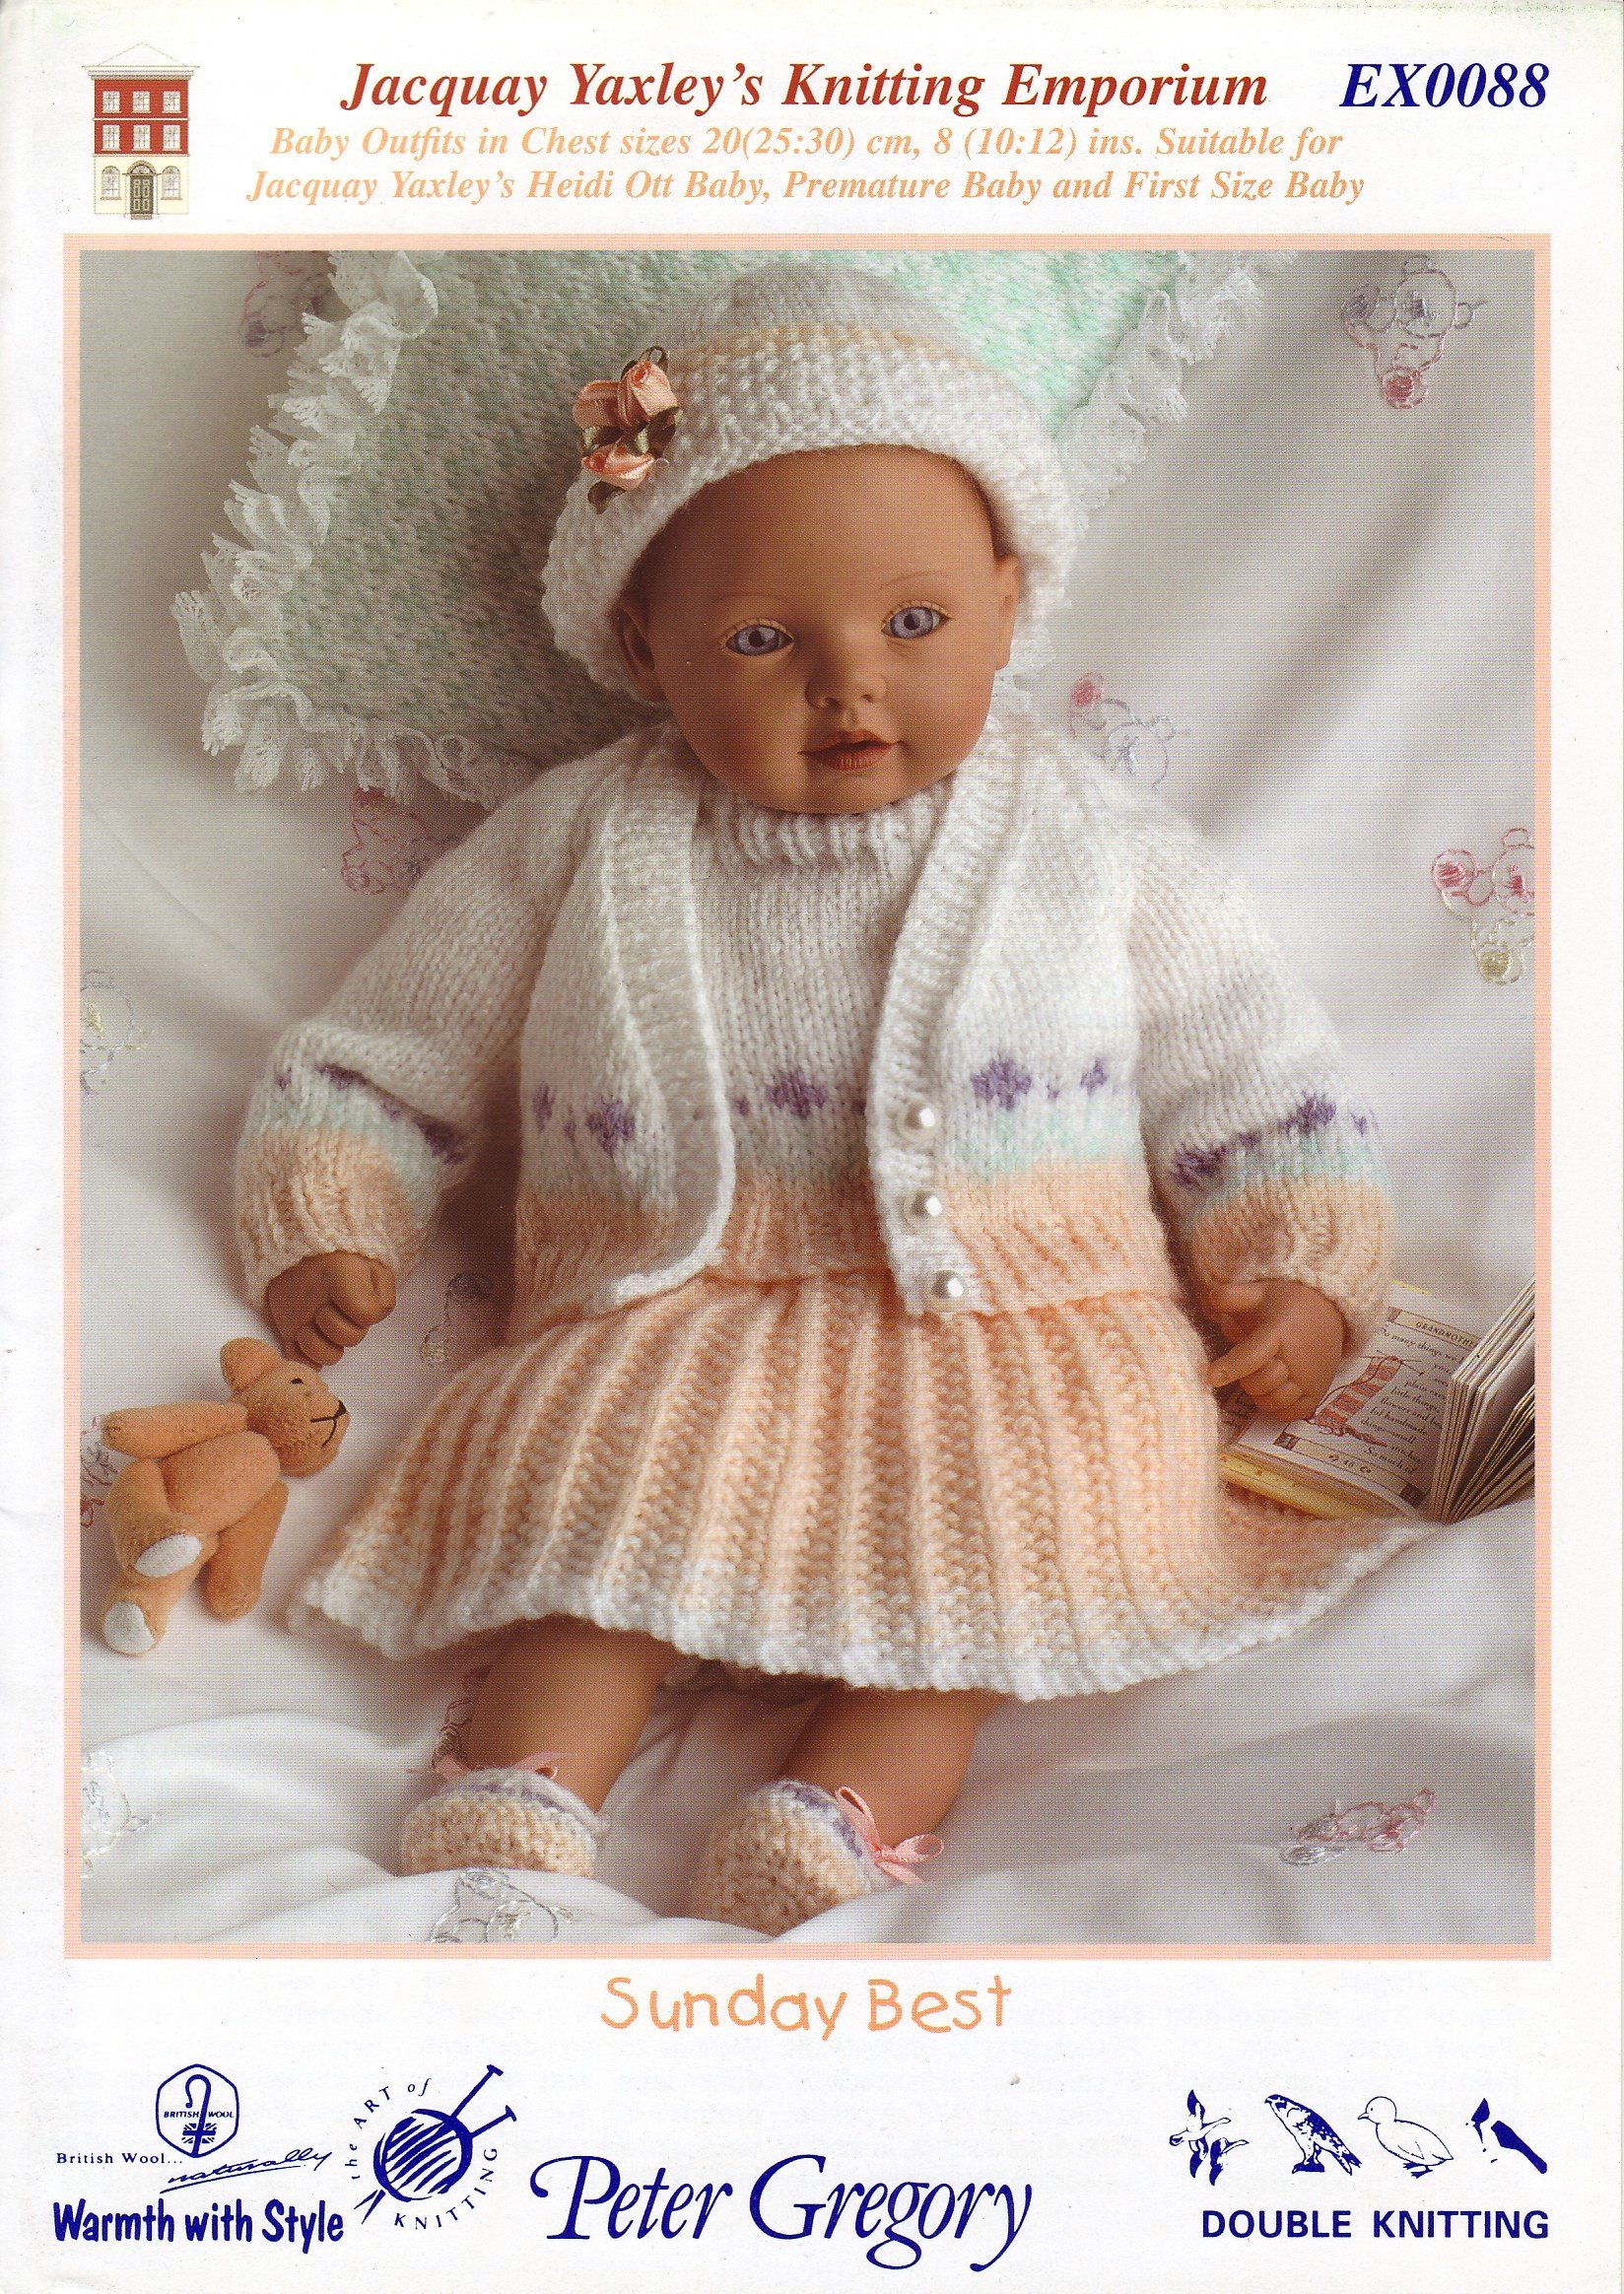 d5c2a3e33 Jacquay Yaxley Heidi Ott Baby Doll Outfits  Suitable for Premature ...